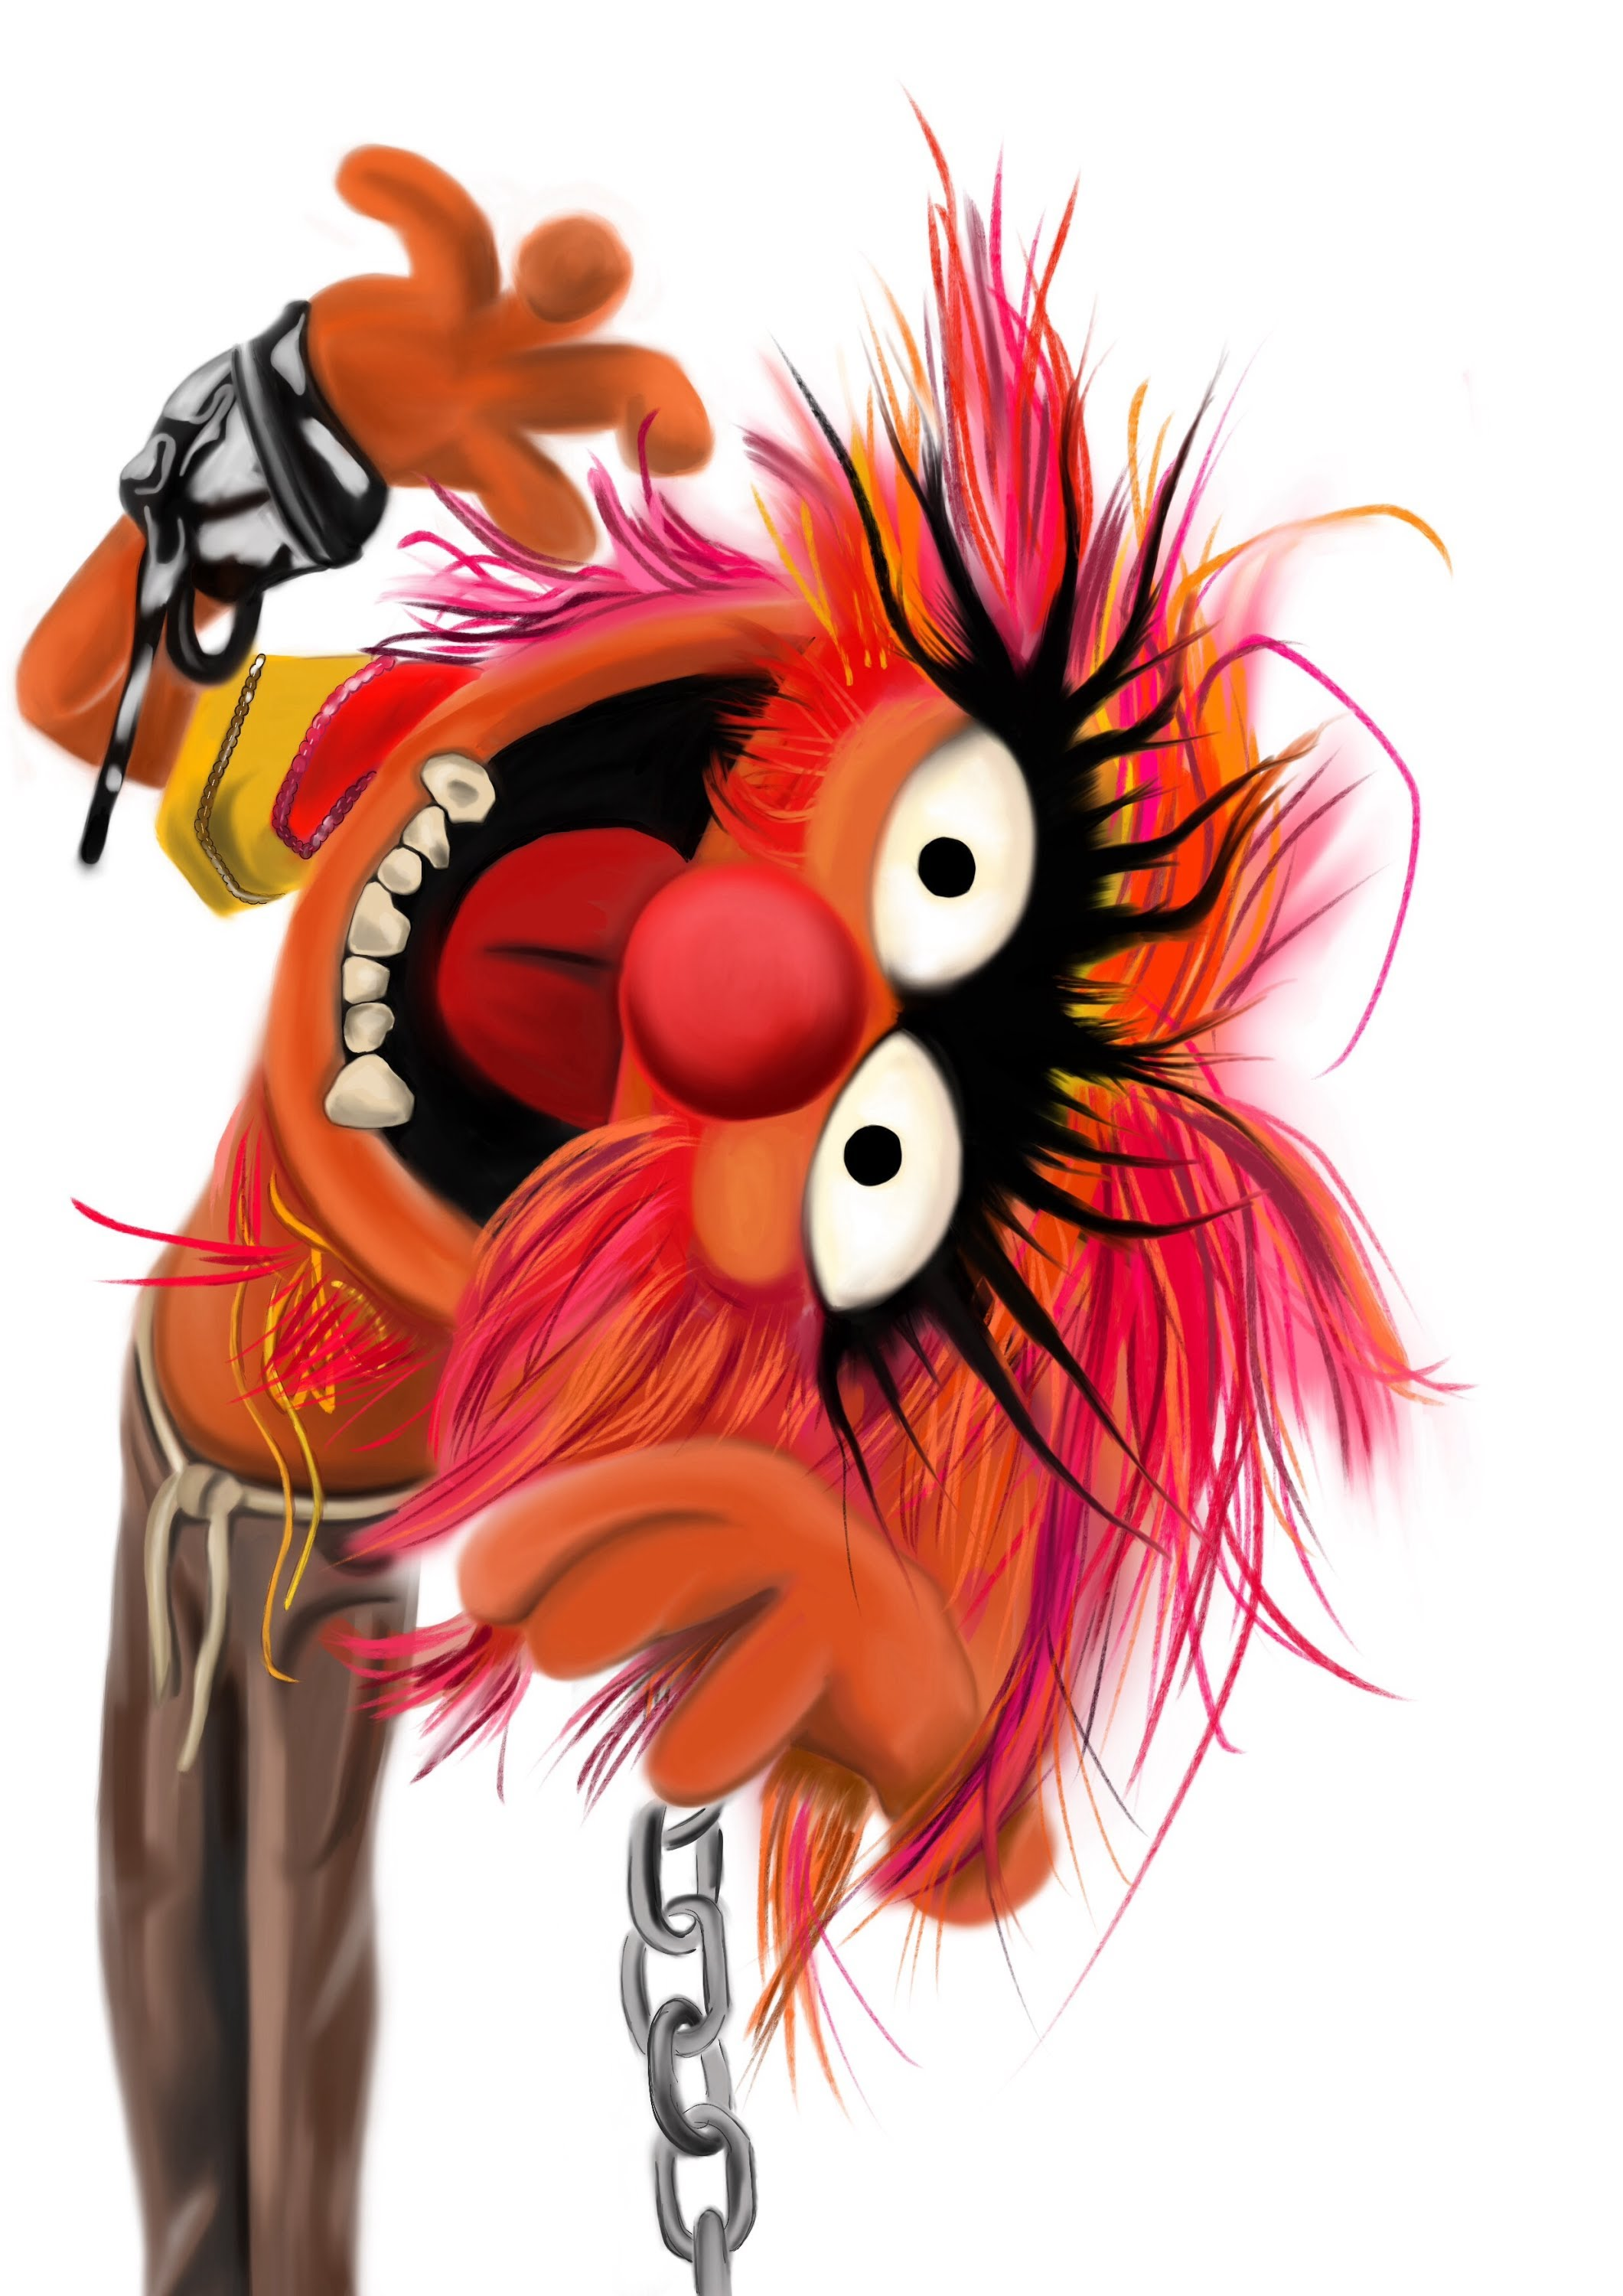 2121x3000 The Muppets Animal. Sketching On Ipad By Maria Araghouna